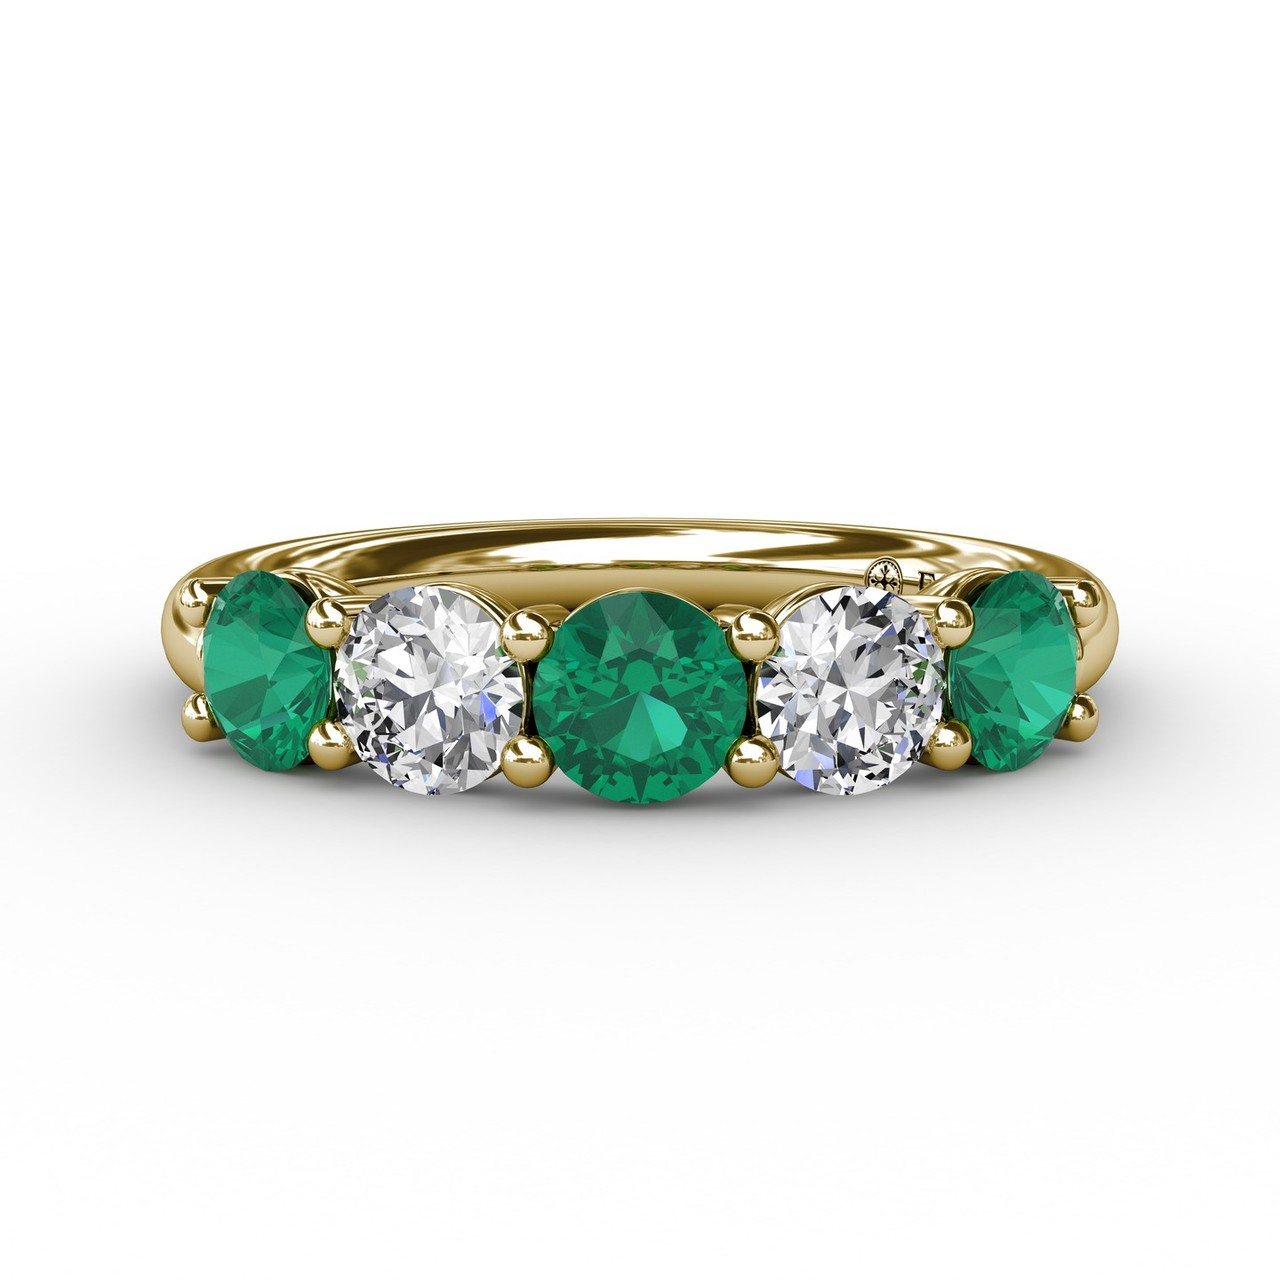 Anniversary Bands - Chunky Emerald and Diamond Shared Prong Anniversary Band